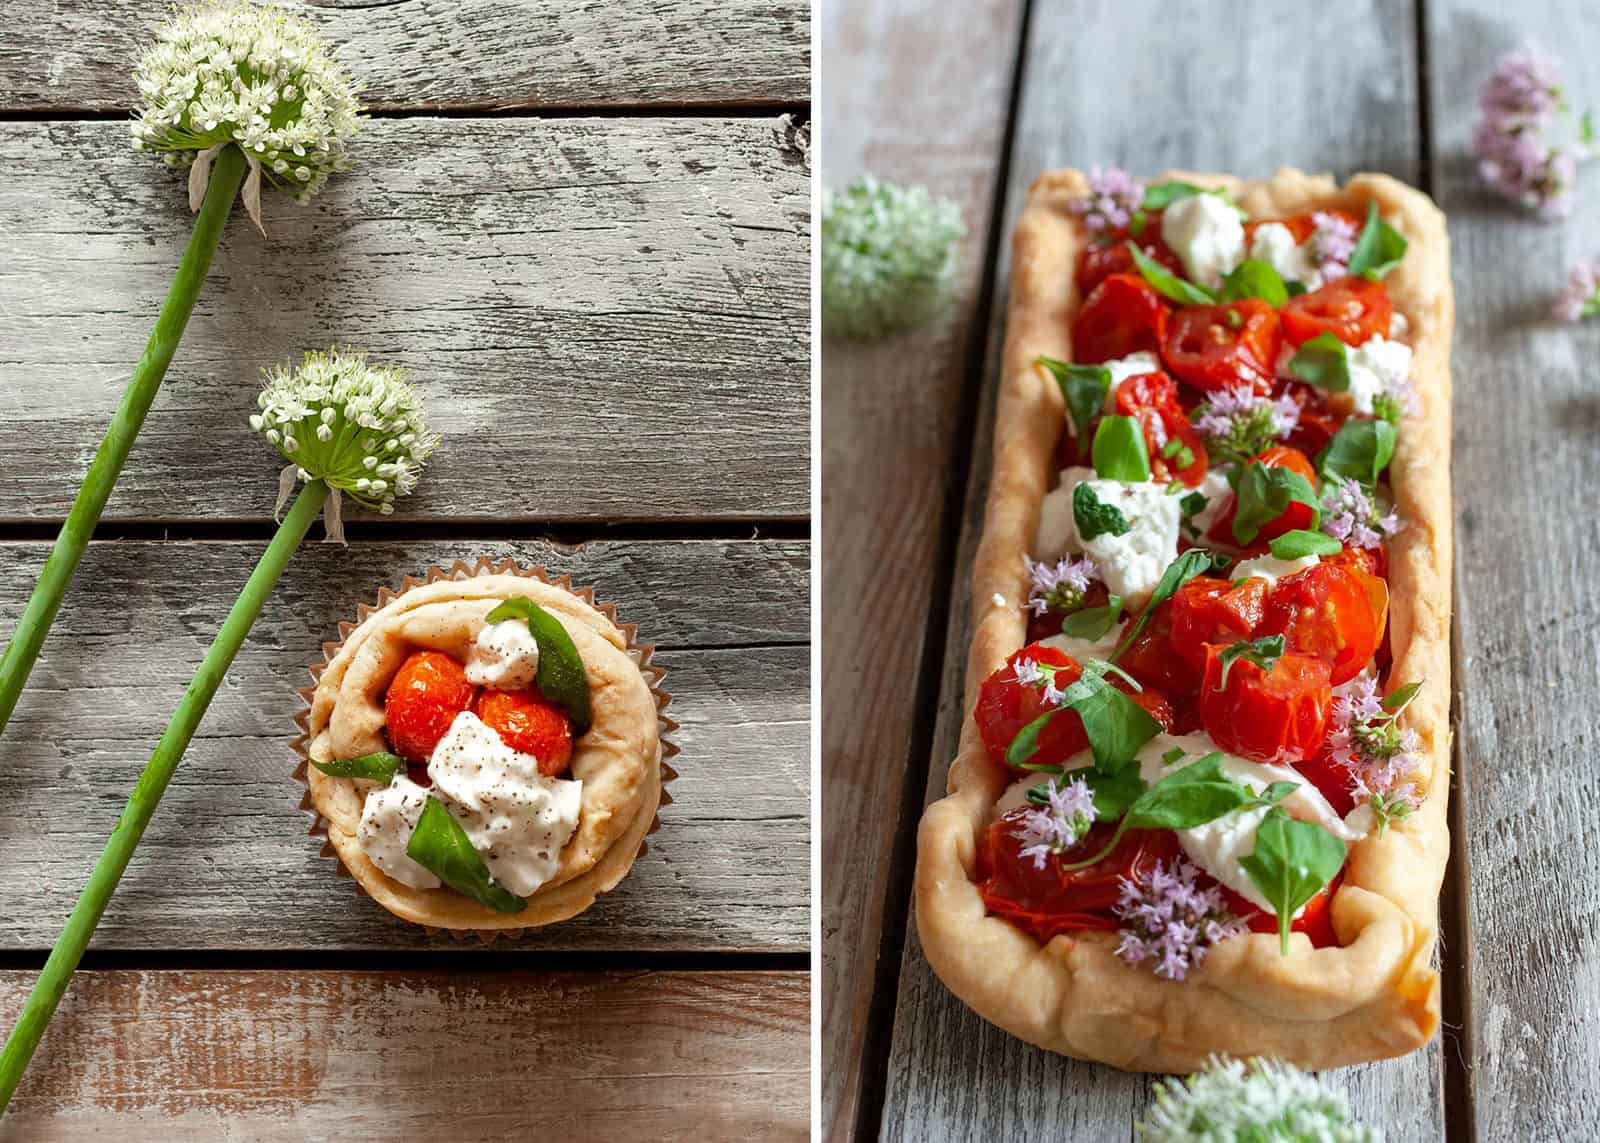 Tart with buffalo mozzarella